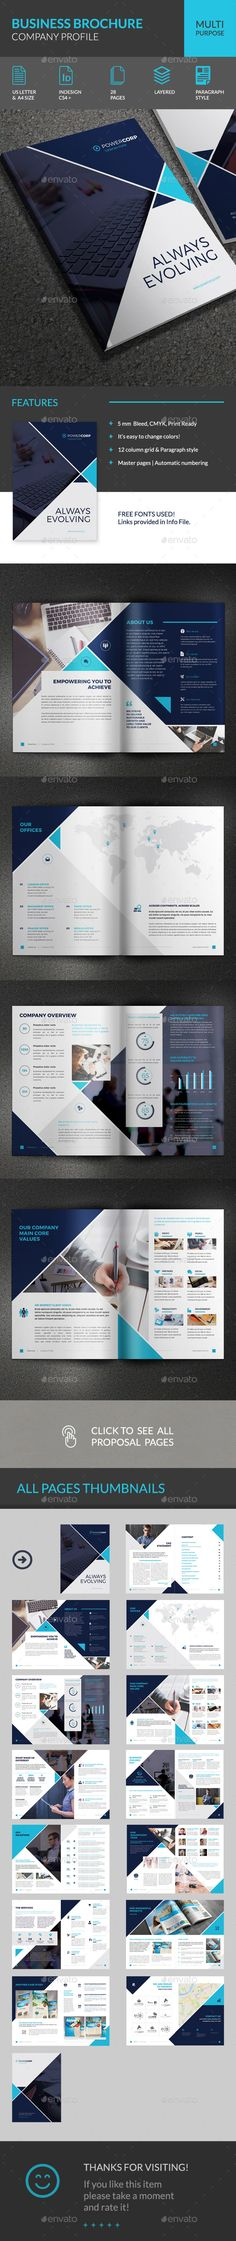 PowerCorp Business Brochure - Corporate Profile Template PSD. Download here: http://graphicriver.net/item/powercorp-business-brochure-corporate-profile/16079324?ref=ksioks